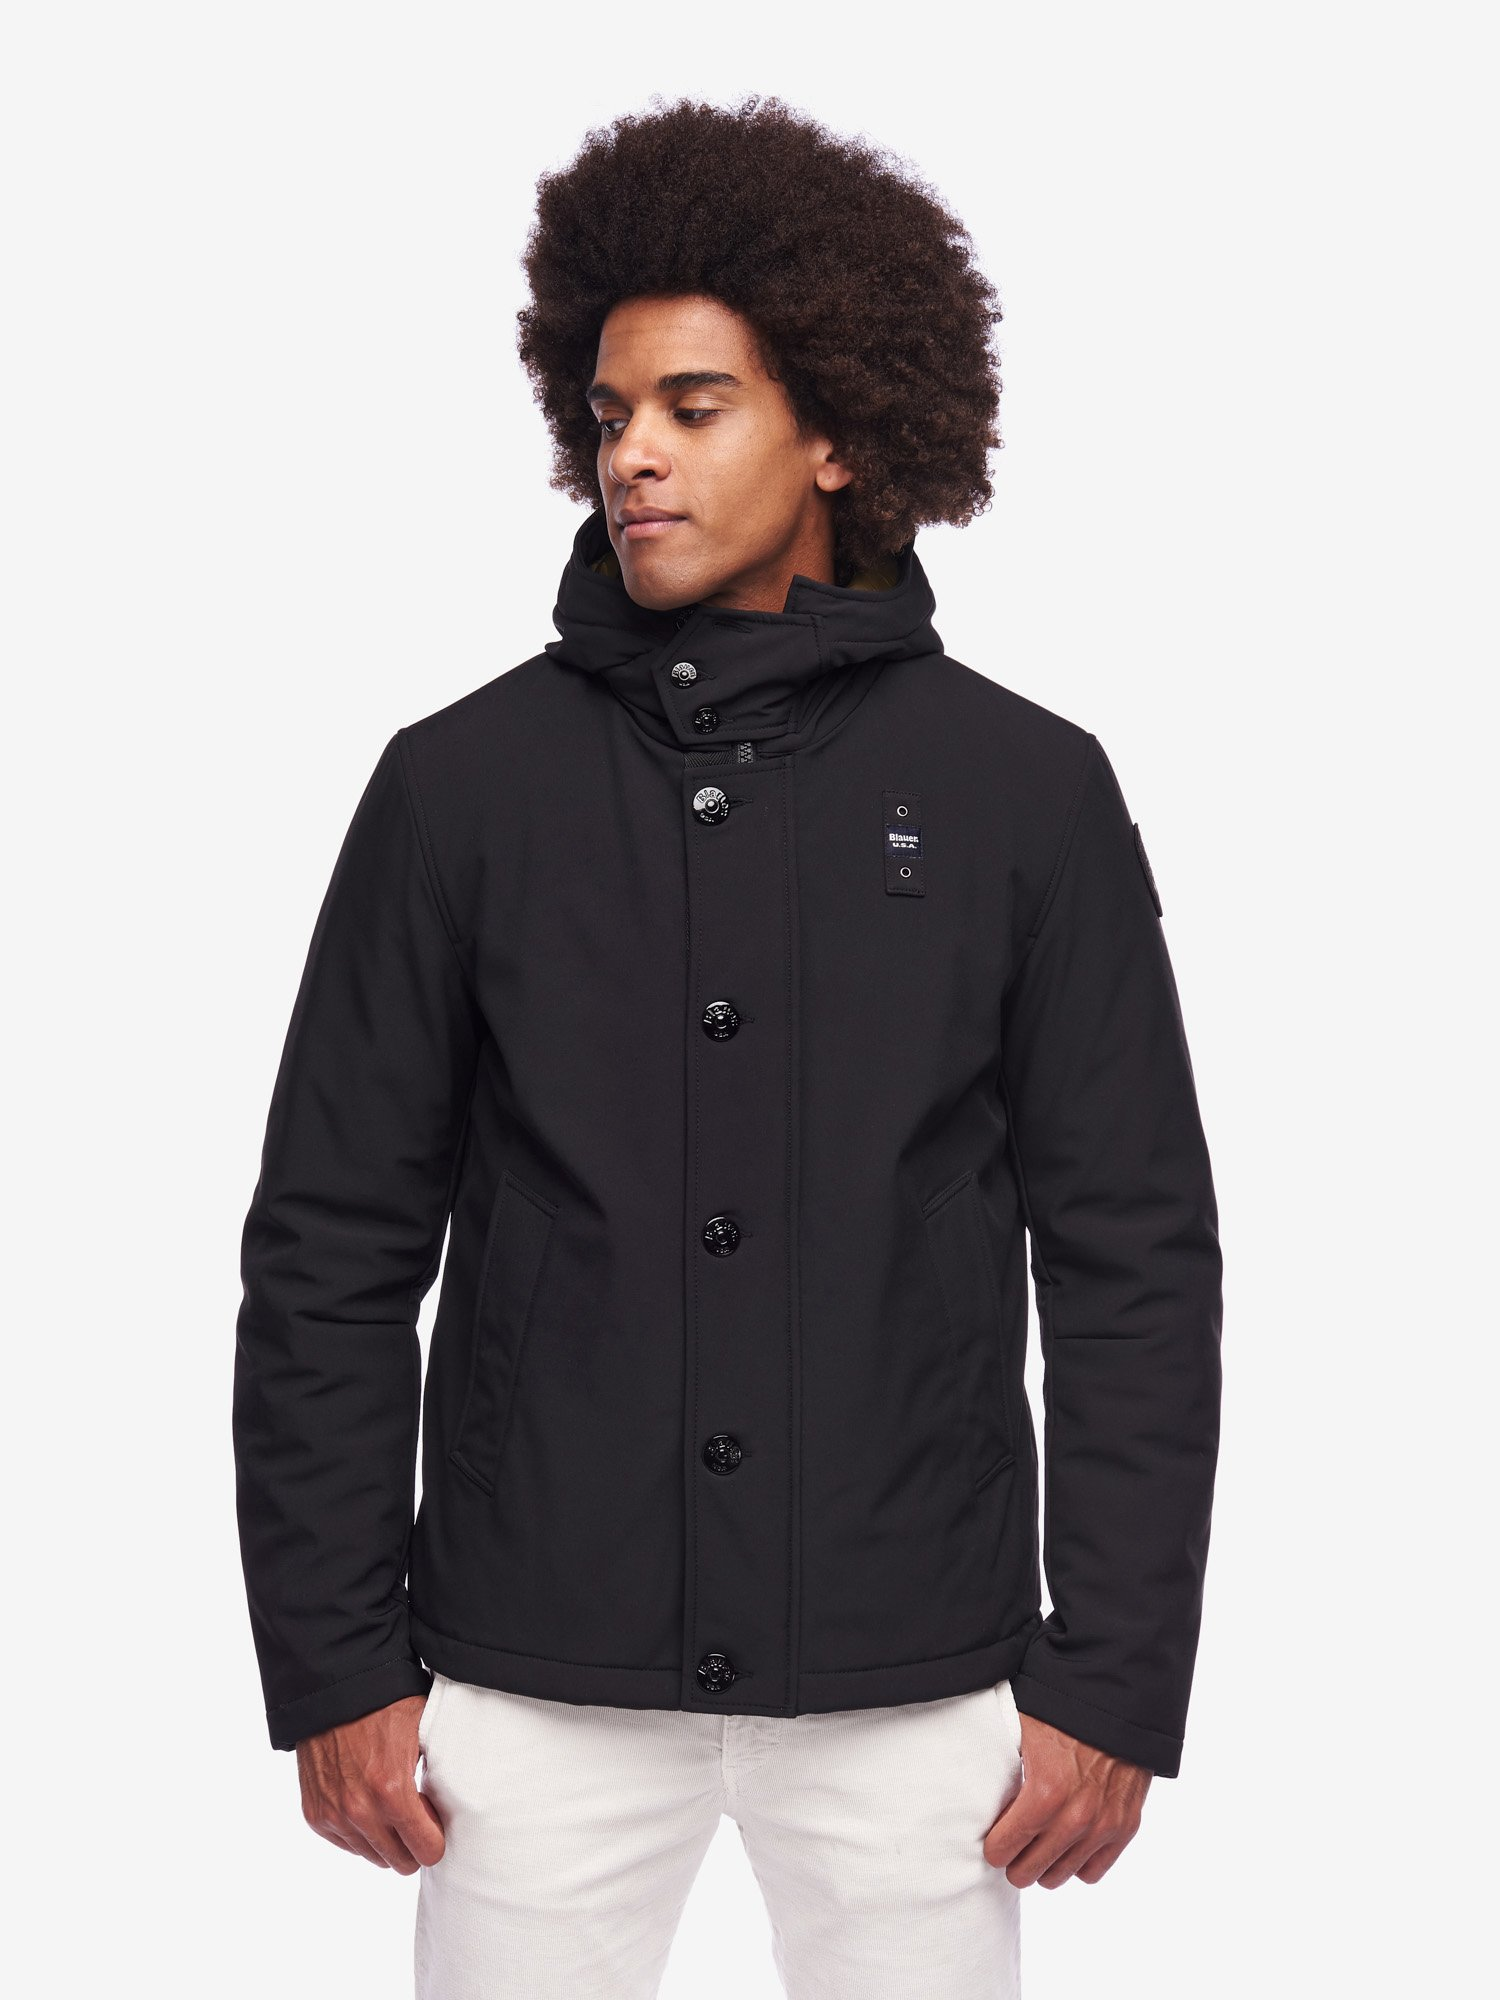 OWEN PADDED JACKET WITH HOOD - Blauer